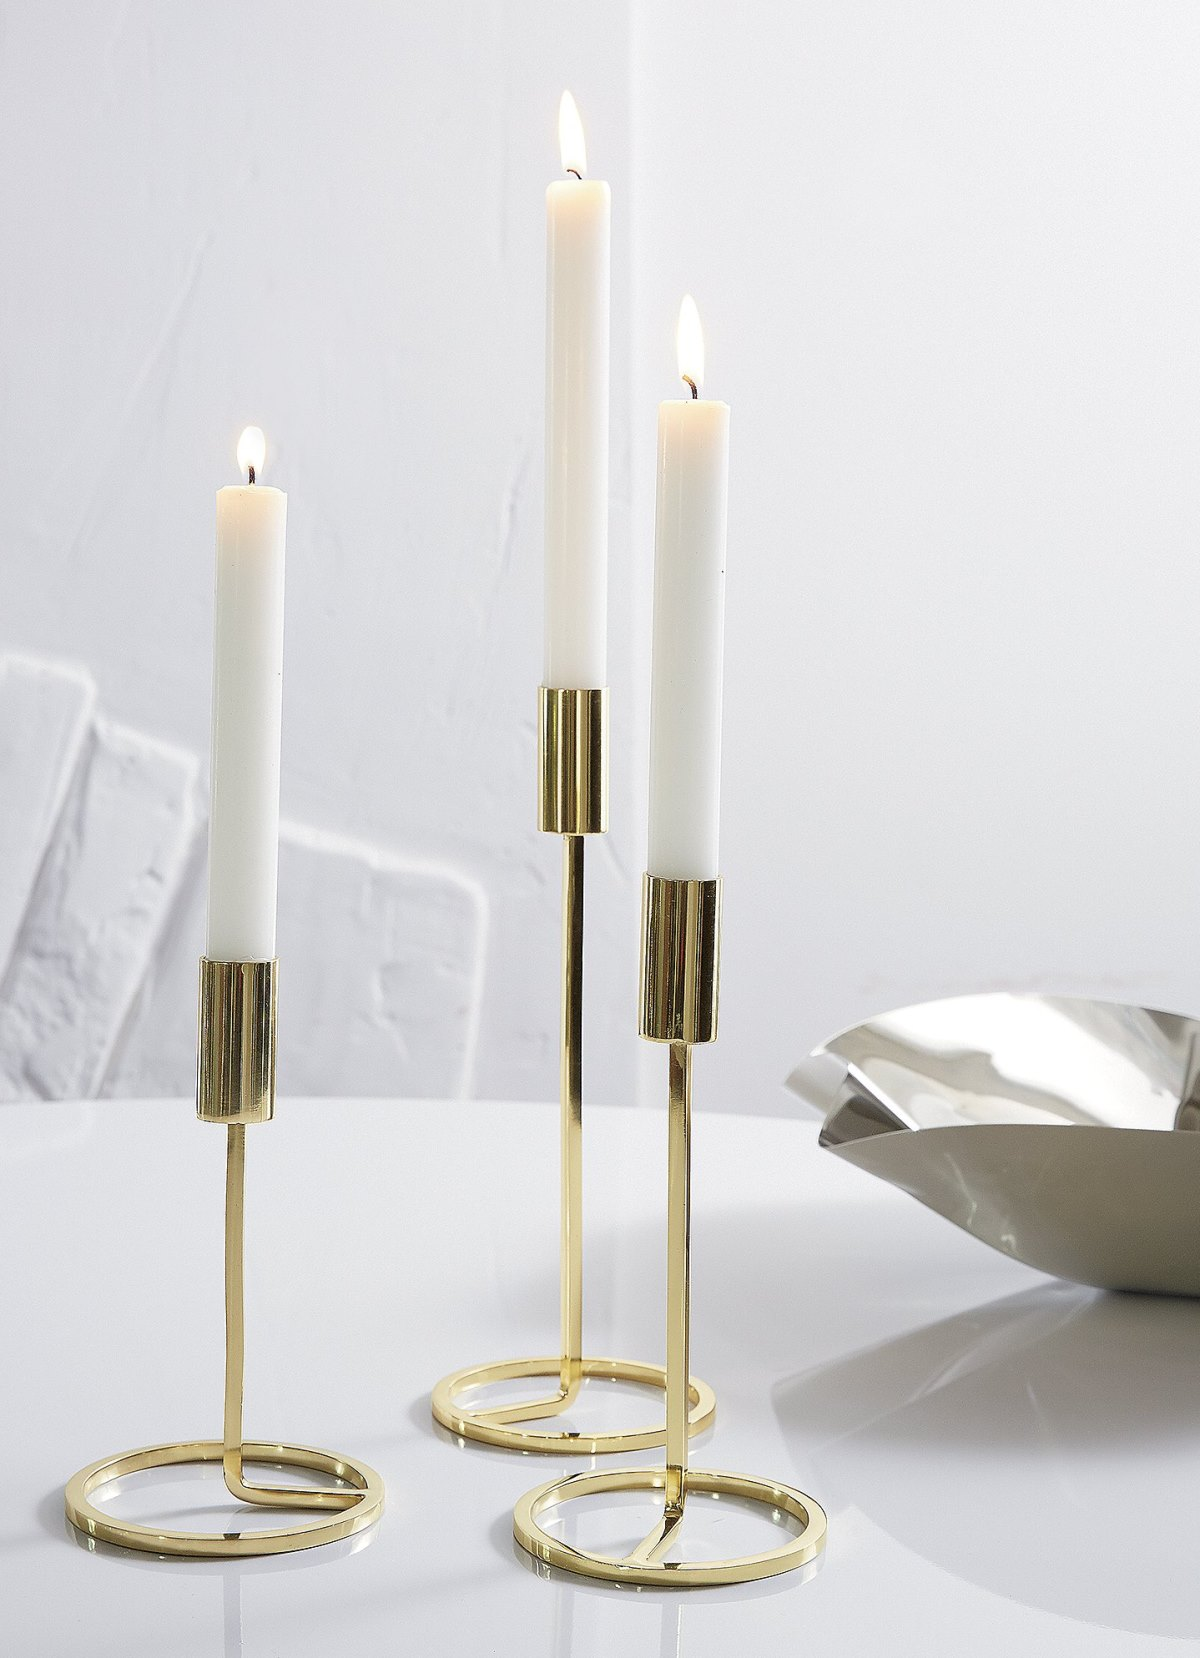 Taper candle holders from CB2